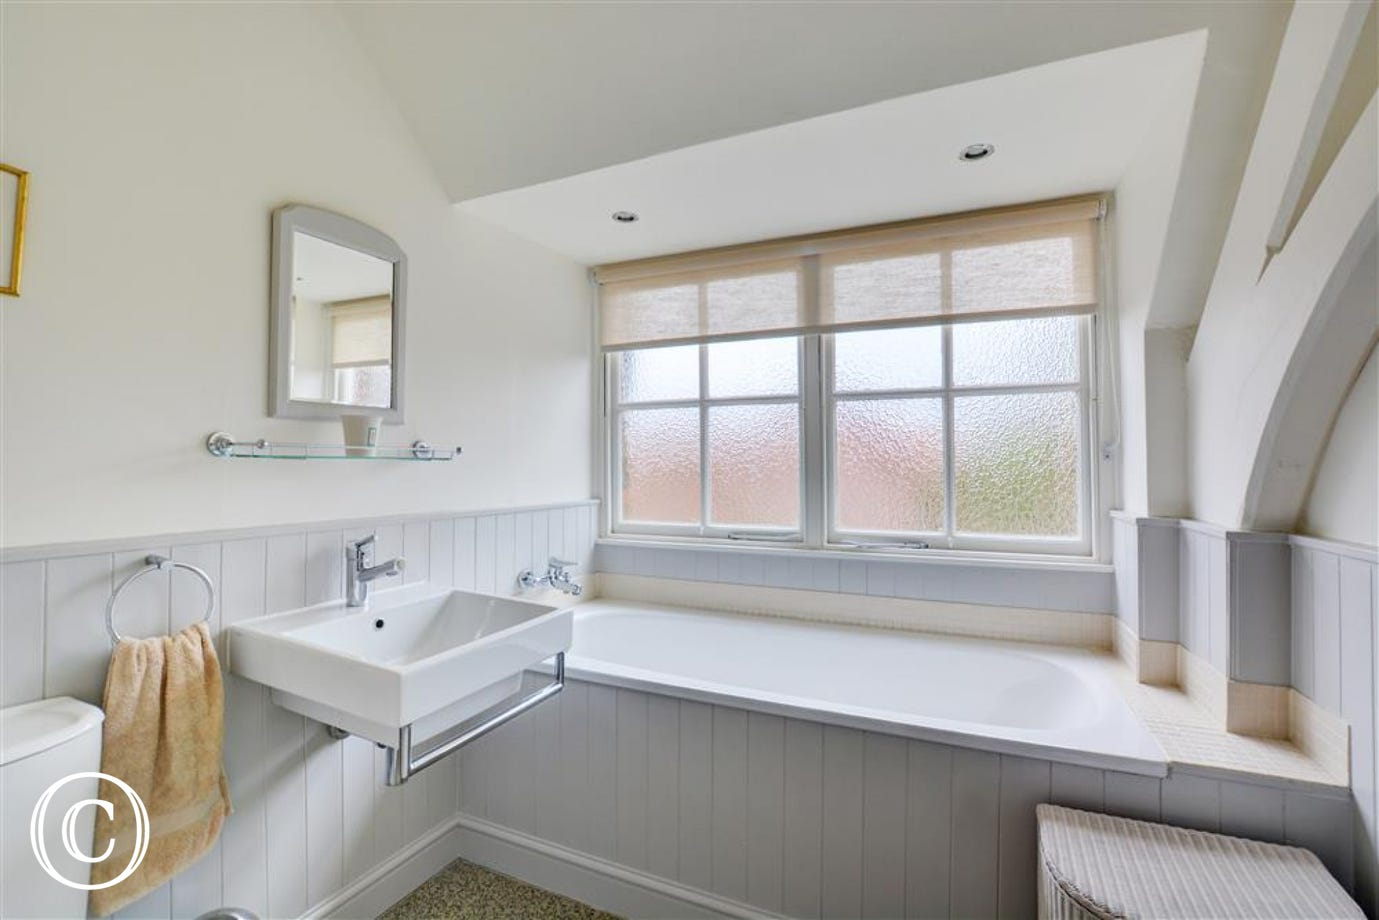 First floor bathroom with bath and wash basin